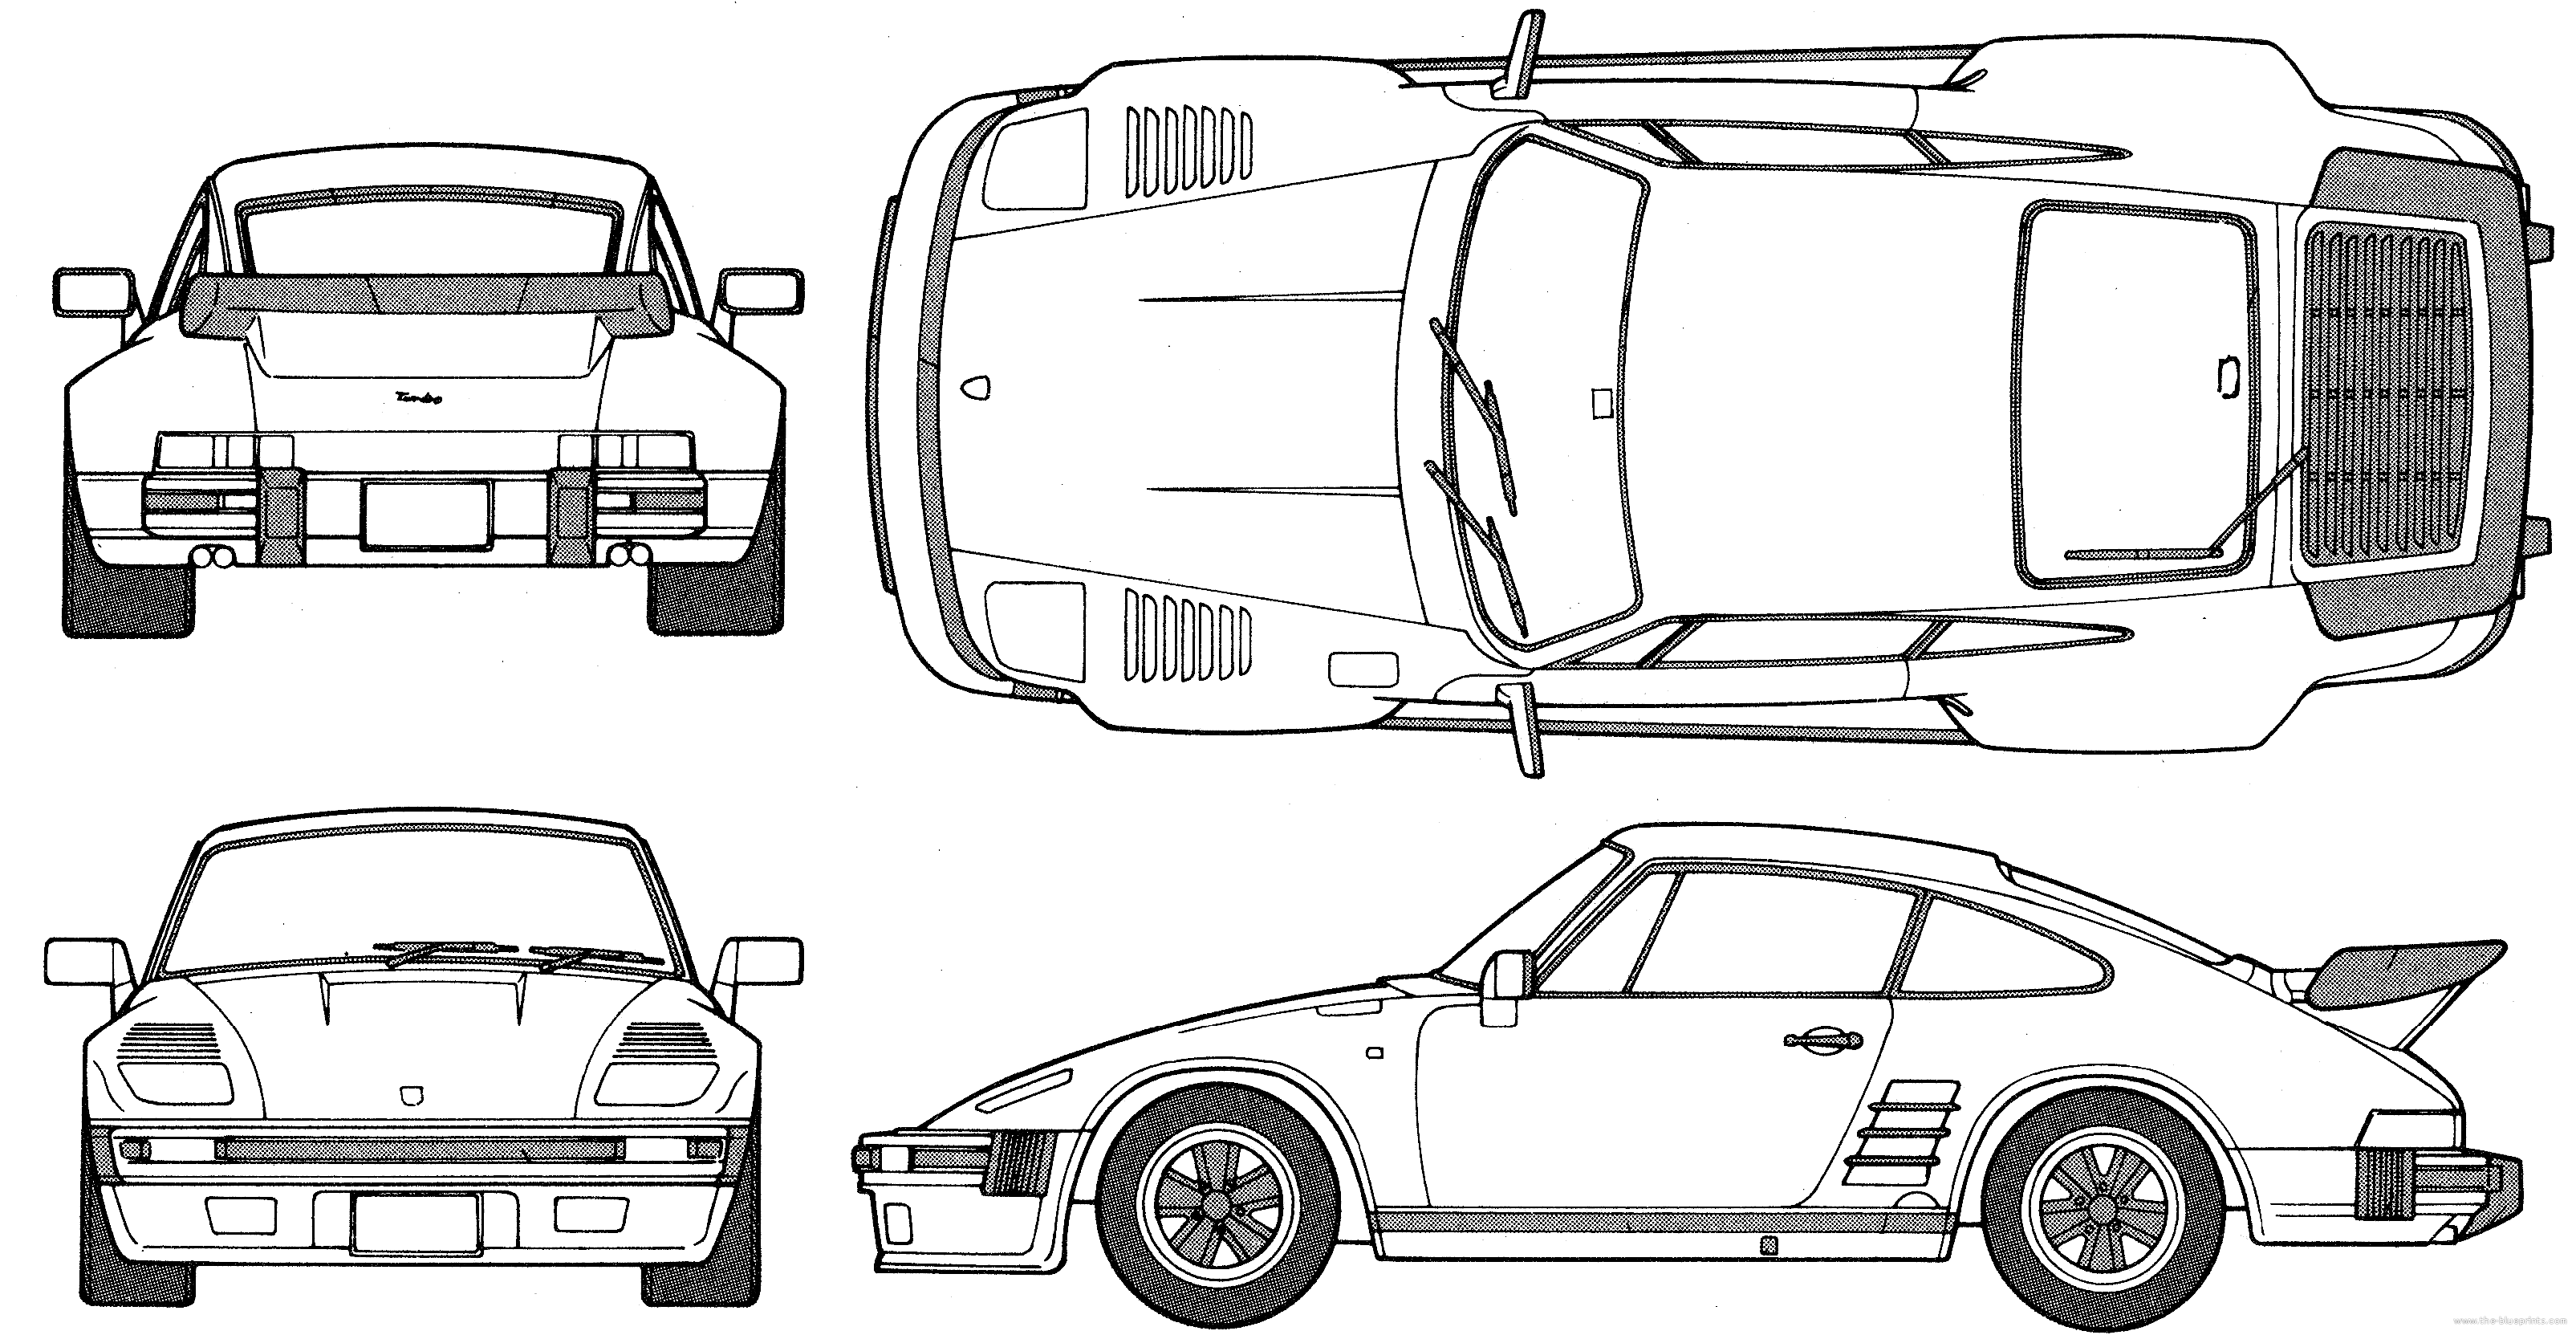 Porsche 911 Flatnose Coupe Blueprints Free